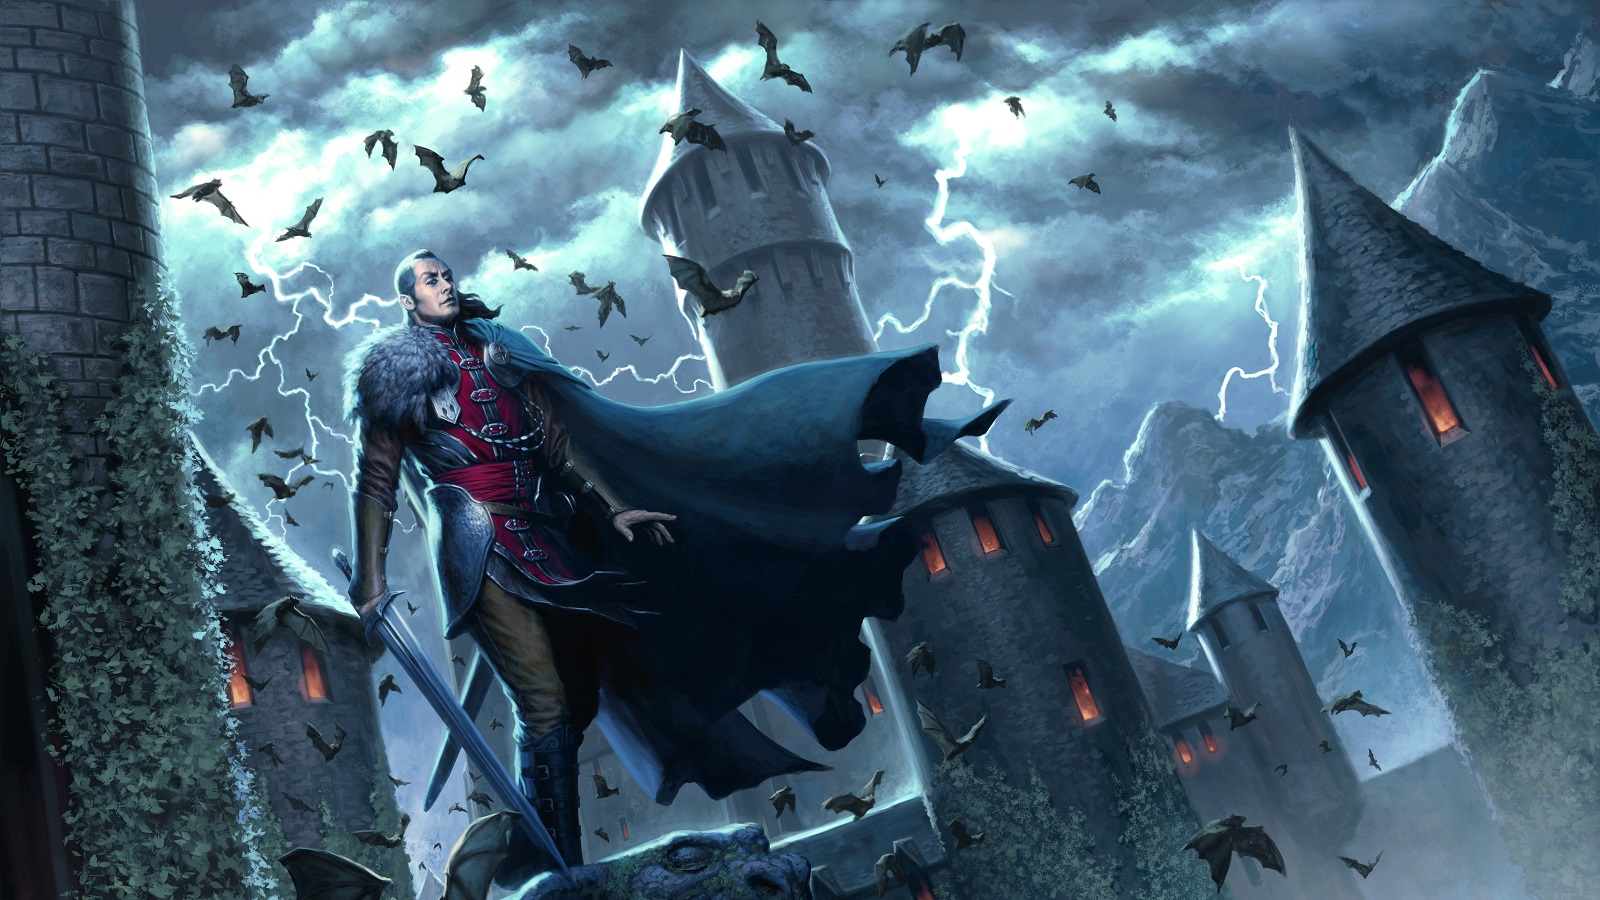 Get Ready For A Scary Good Time Next Month With The Ravenloft Module On Neverwinter GAMING TREND